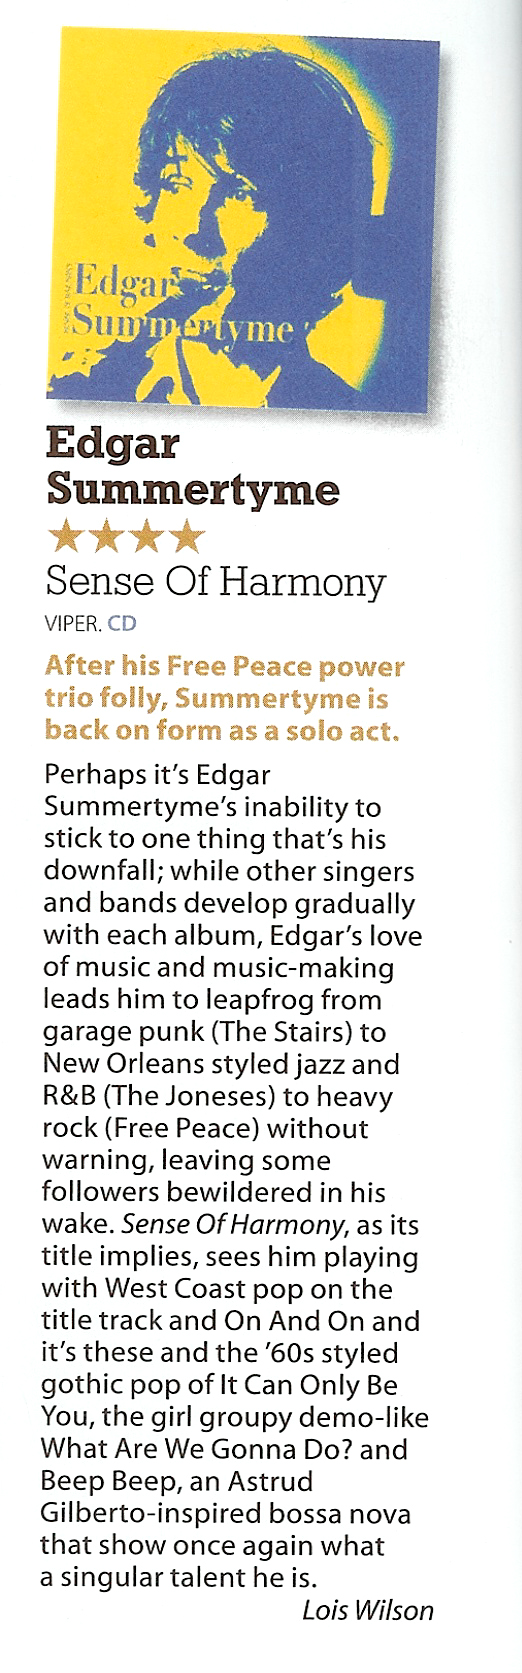 Edgar Summertyme mojo review Oct 2012-1